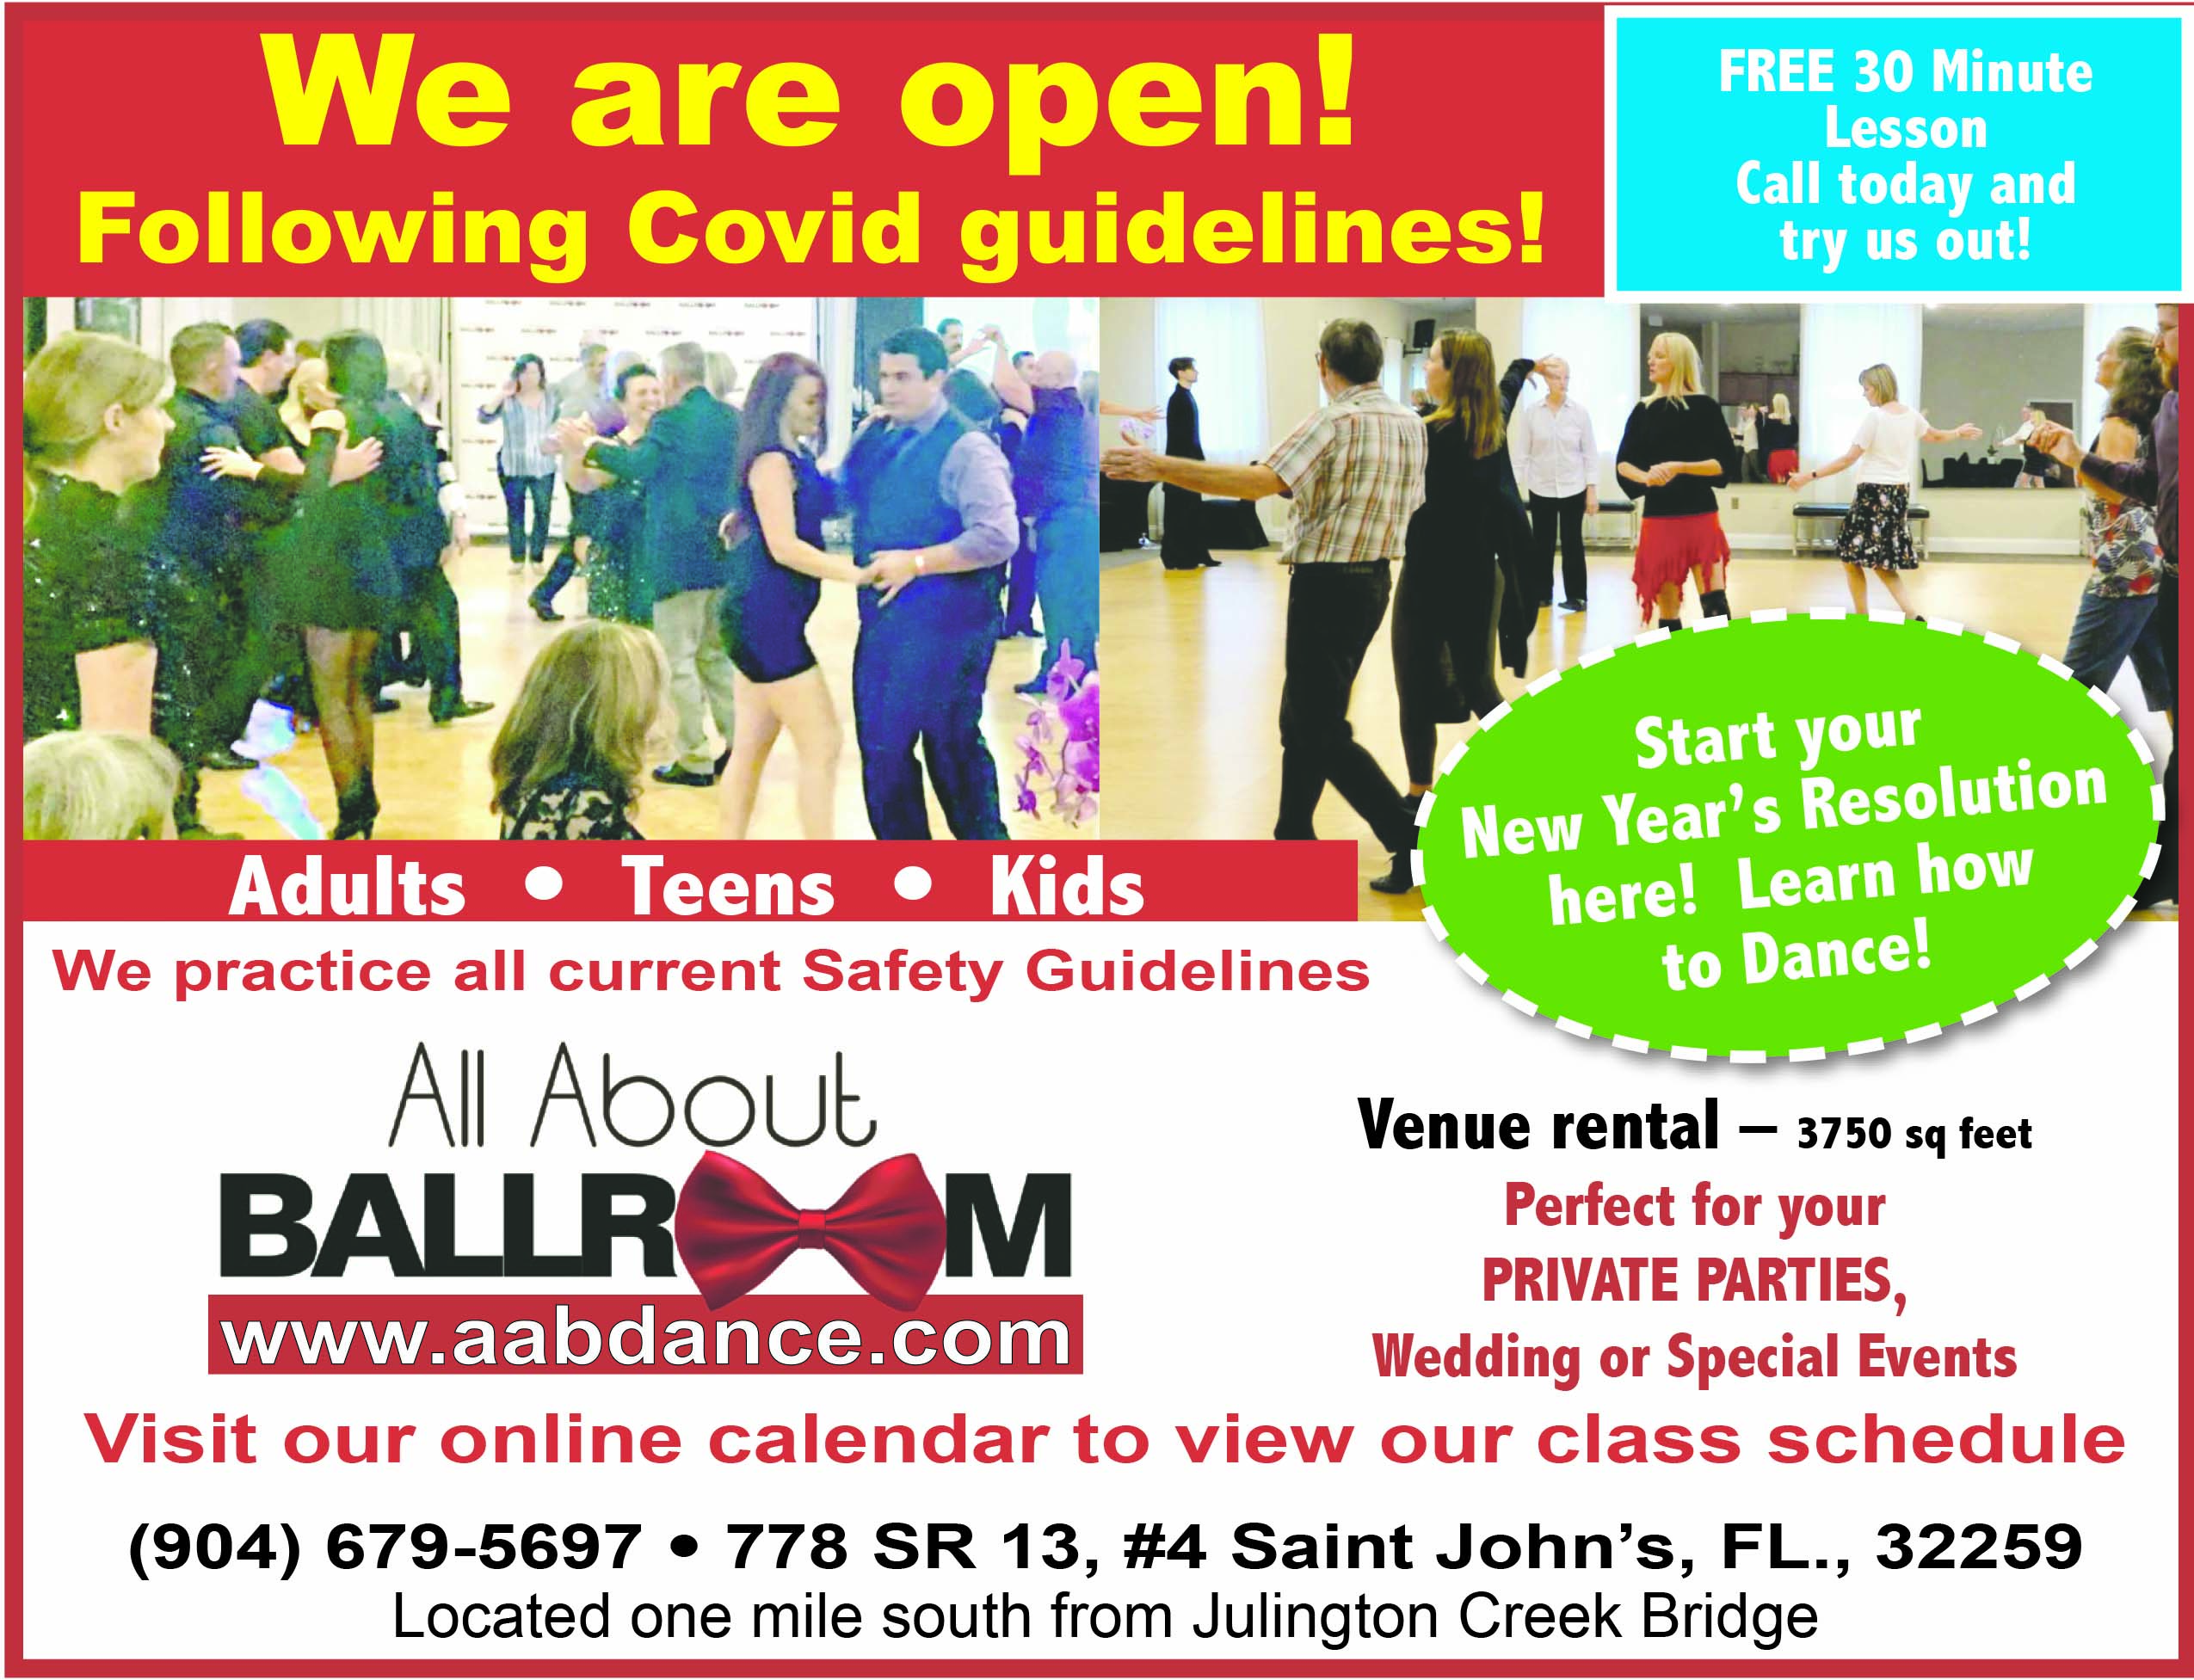 All About Ballroom Start your New Year's Resolution here! Learn how to Dance! Free 30 minute lesson call today and try us out! We are open following covid guidelinges! Venue rental 3750 sq ft perfect for your private parties, wedding or special events! 904 679 5697 www.aabdance.com